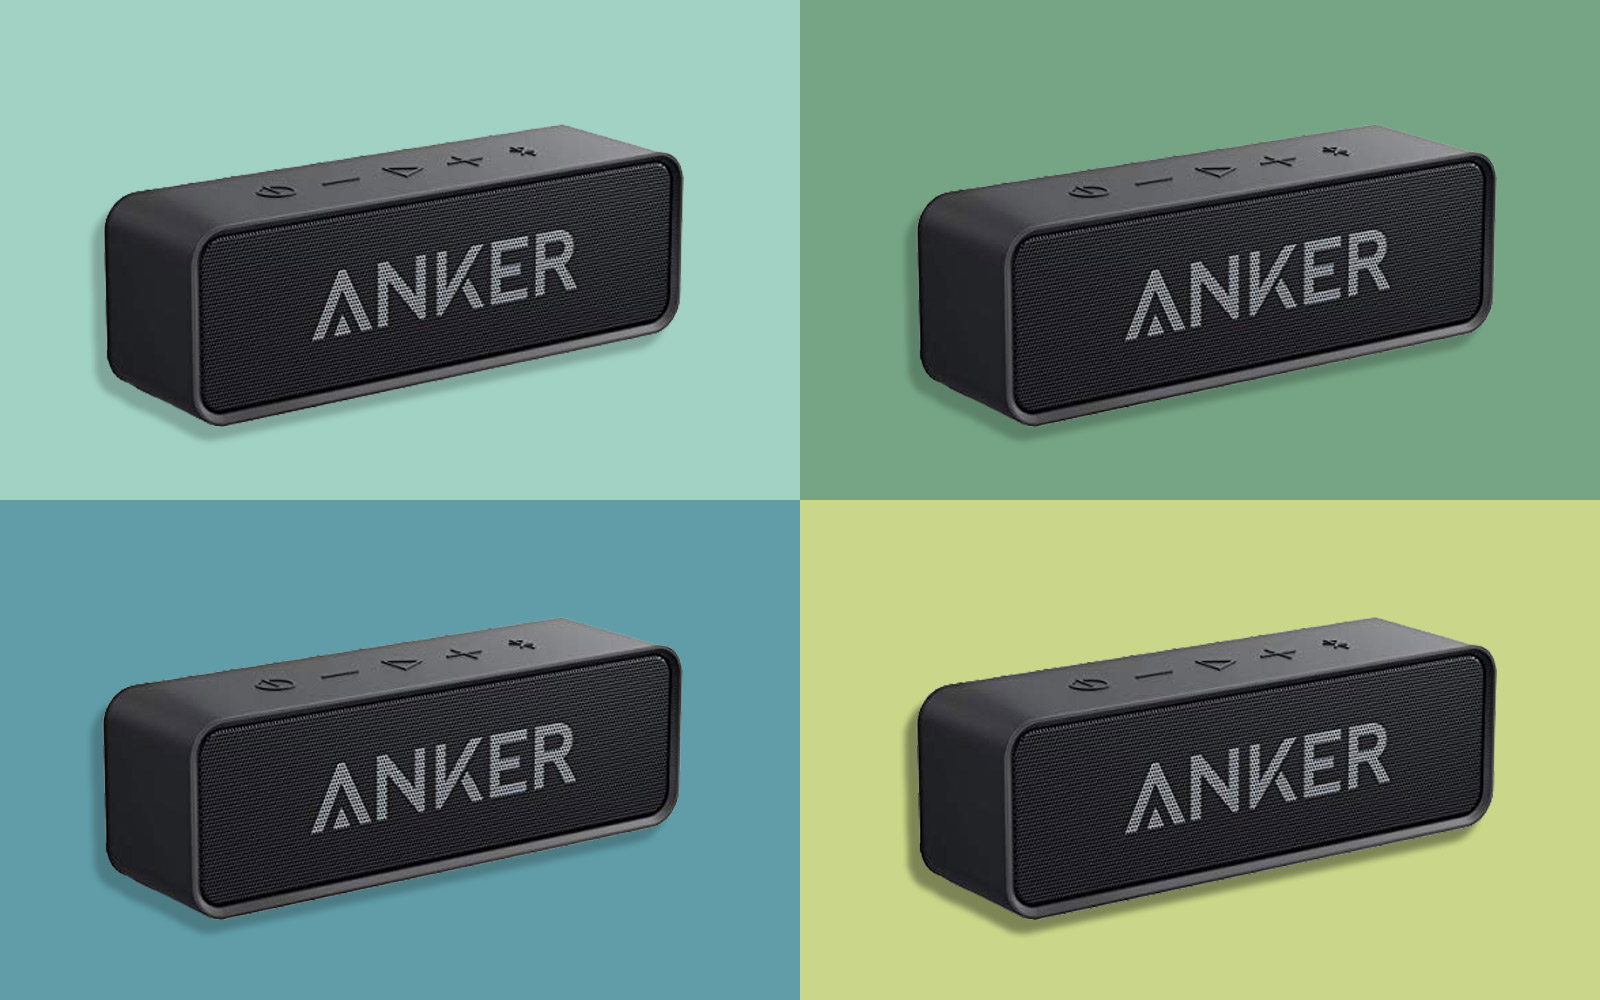 anker speaker sale on amazon